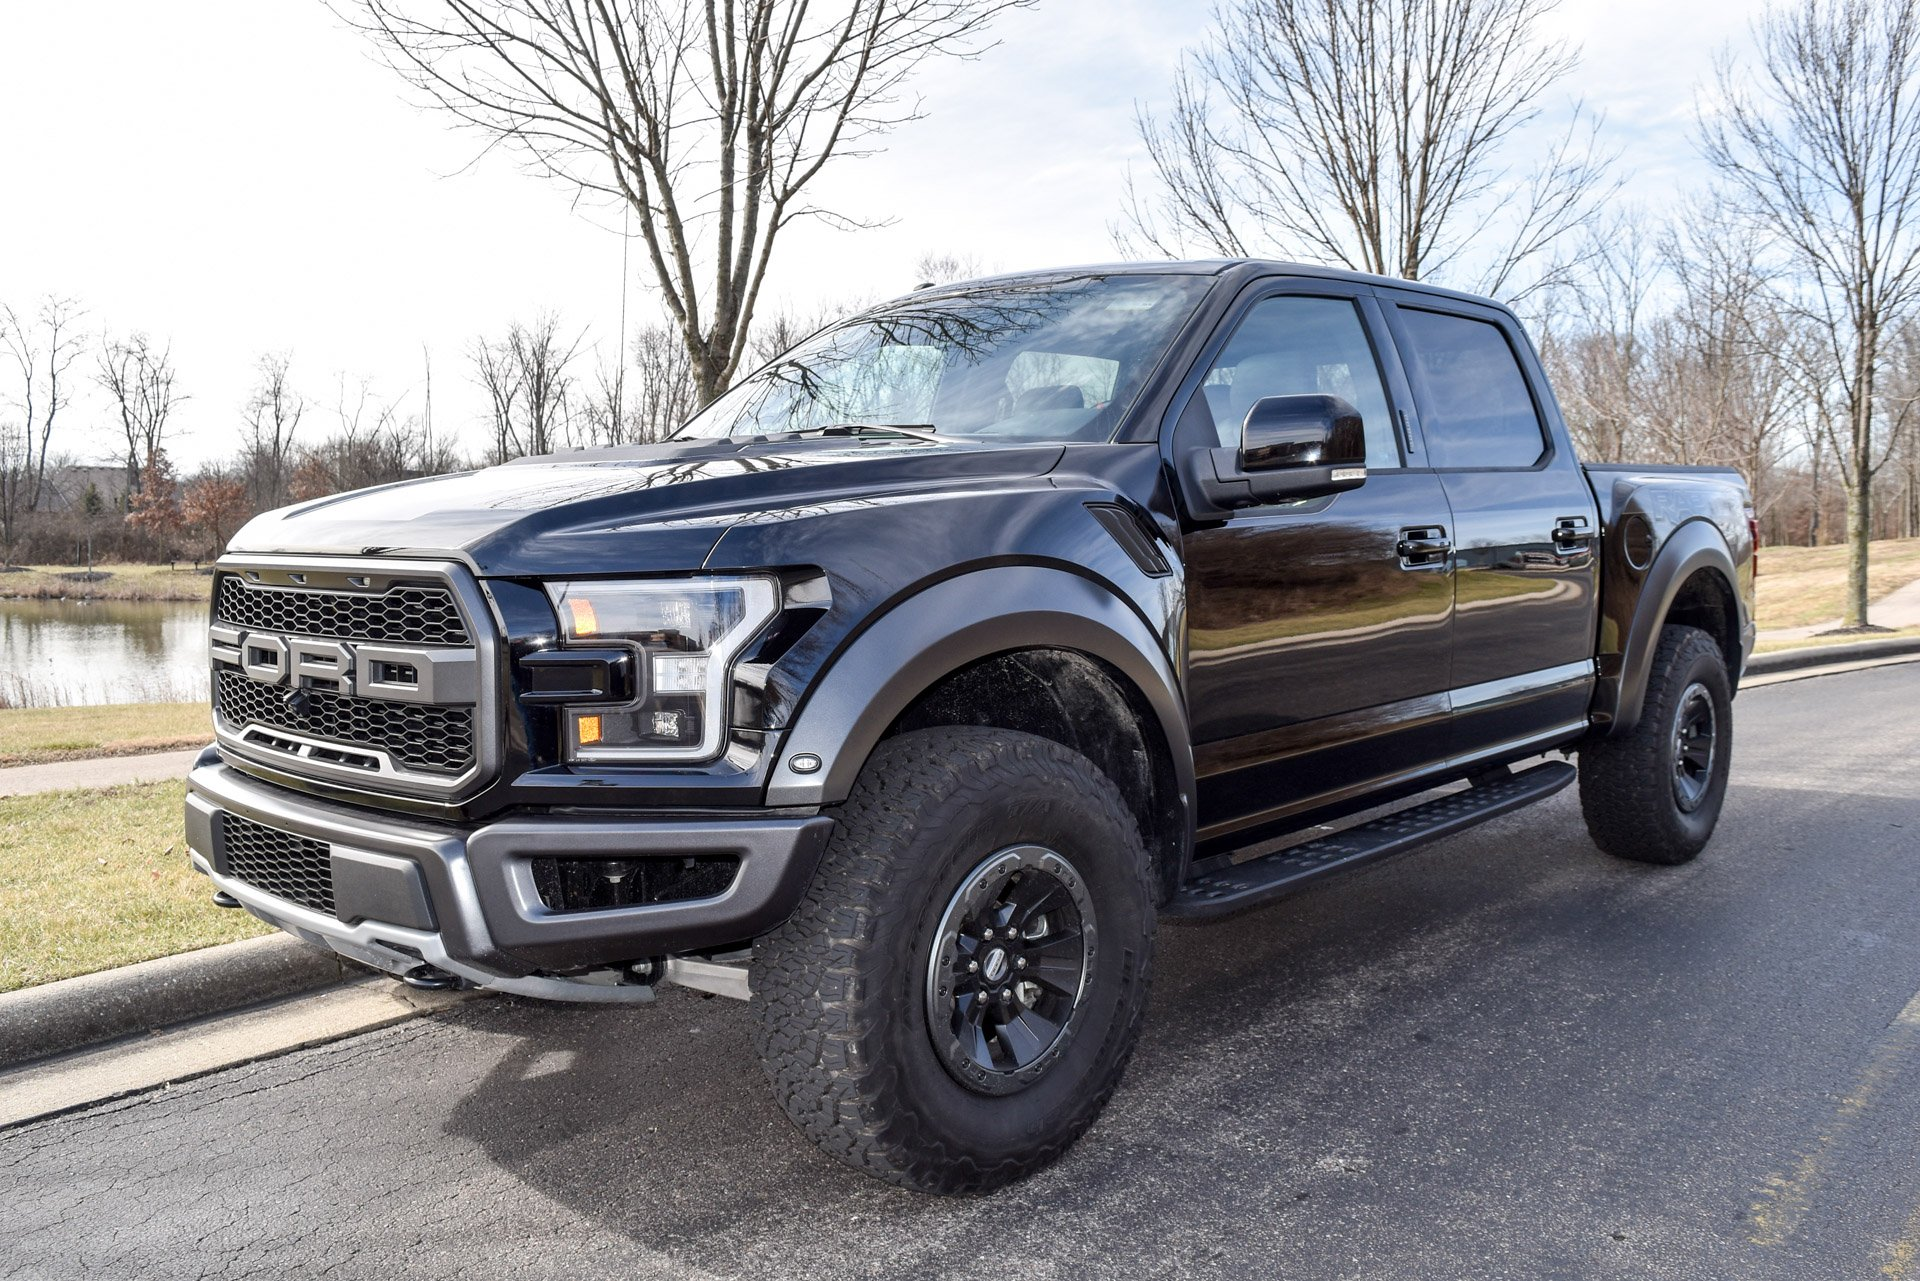 2017 ford f 150 raptor review 95 octane. Black Bedroom Furniture Sets. Home Design Ideas